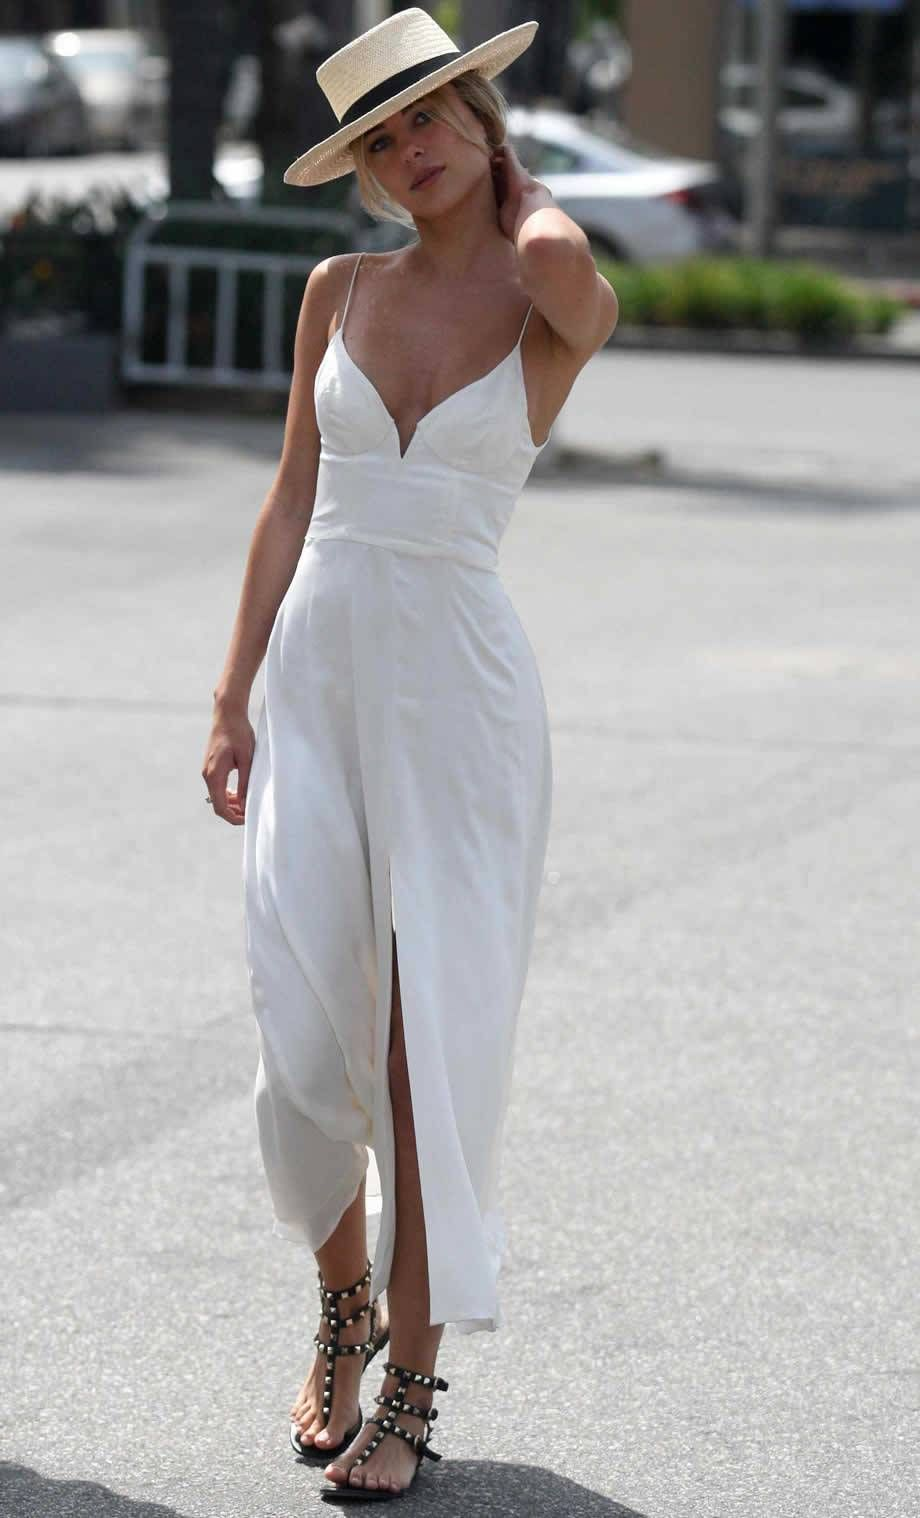 Dress Like An Italian Woman And Look Elegant Daily La Belle Society White Dress Summer Elegant Summer Outfits Summer Fashion Dresses [ 1518 x 920 Pixel ]